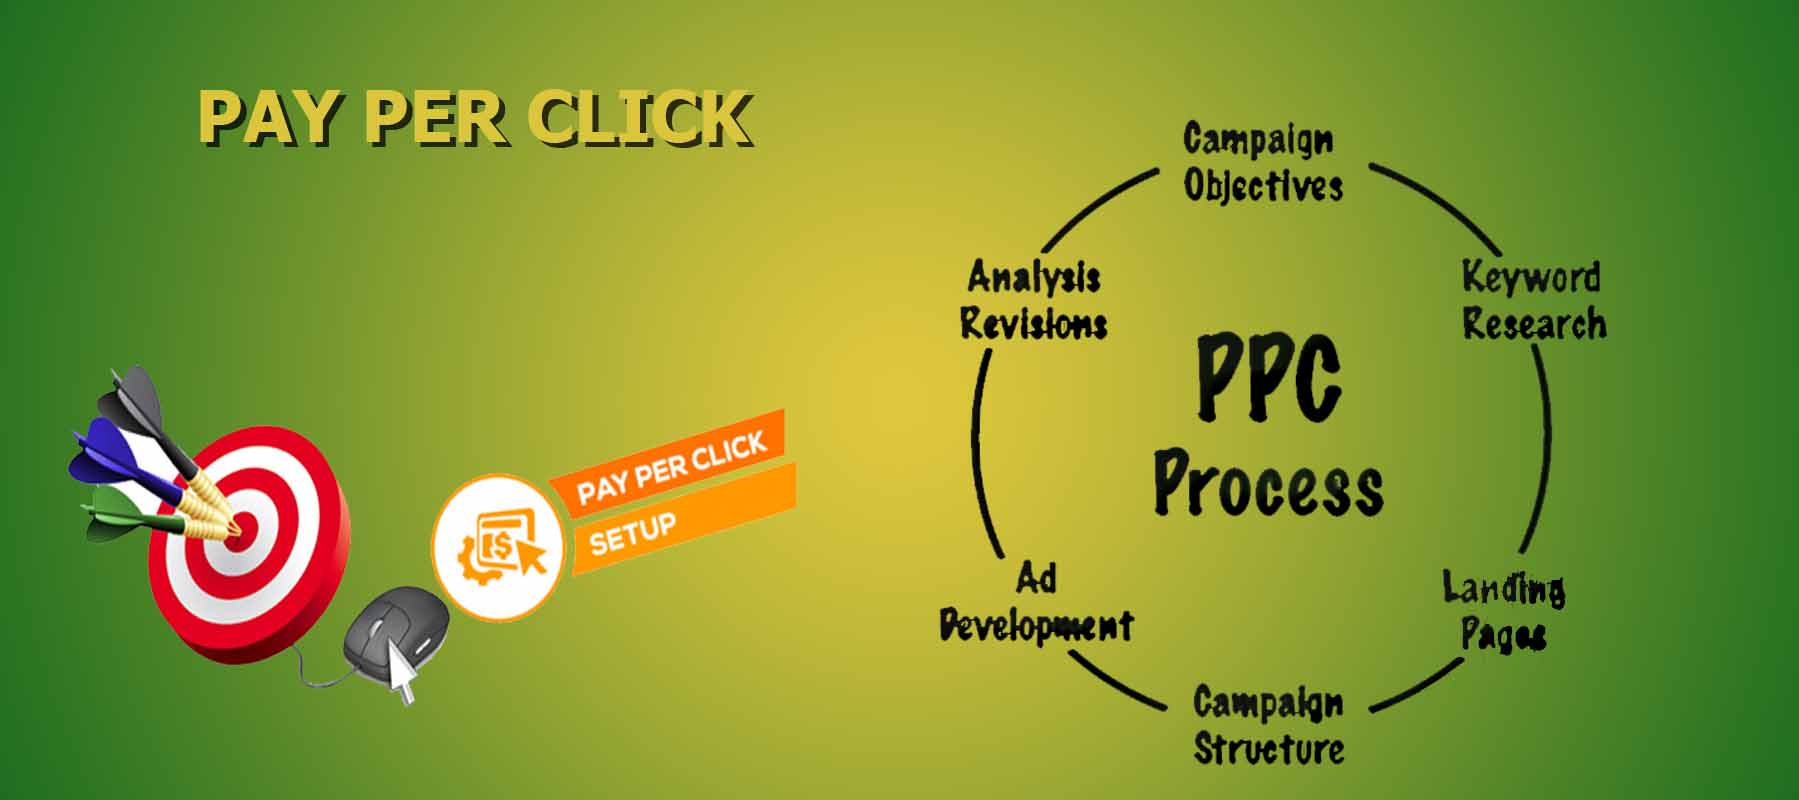 PPC company India | PPC services India | PPC management India | PPC services company India | PPC management company India | Pay per click services India | Pay per click agency India | Pay per click management India